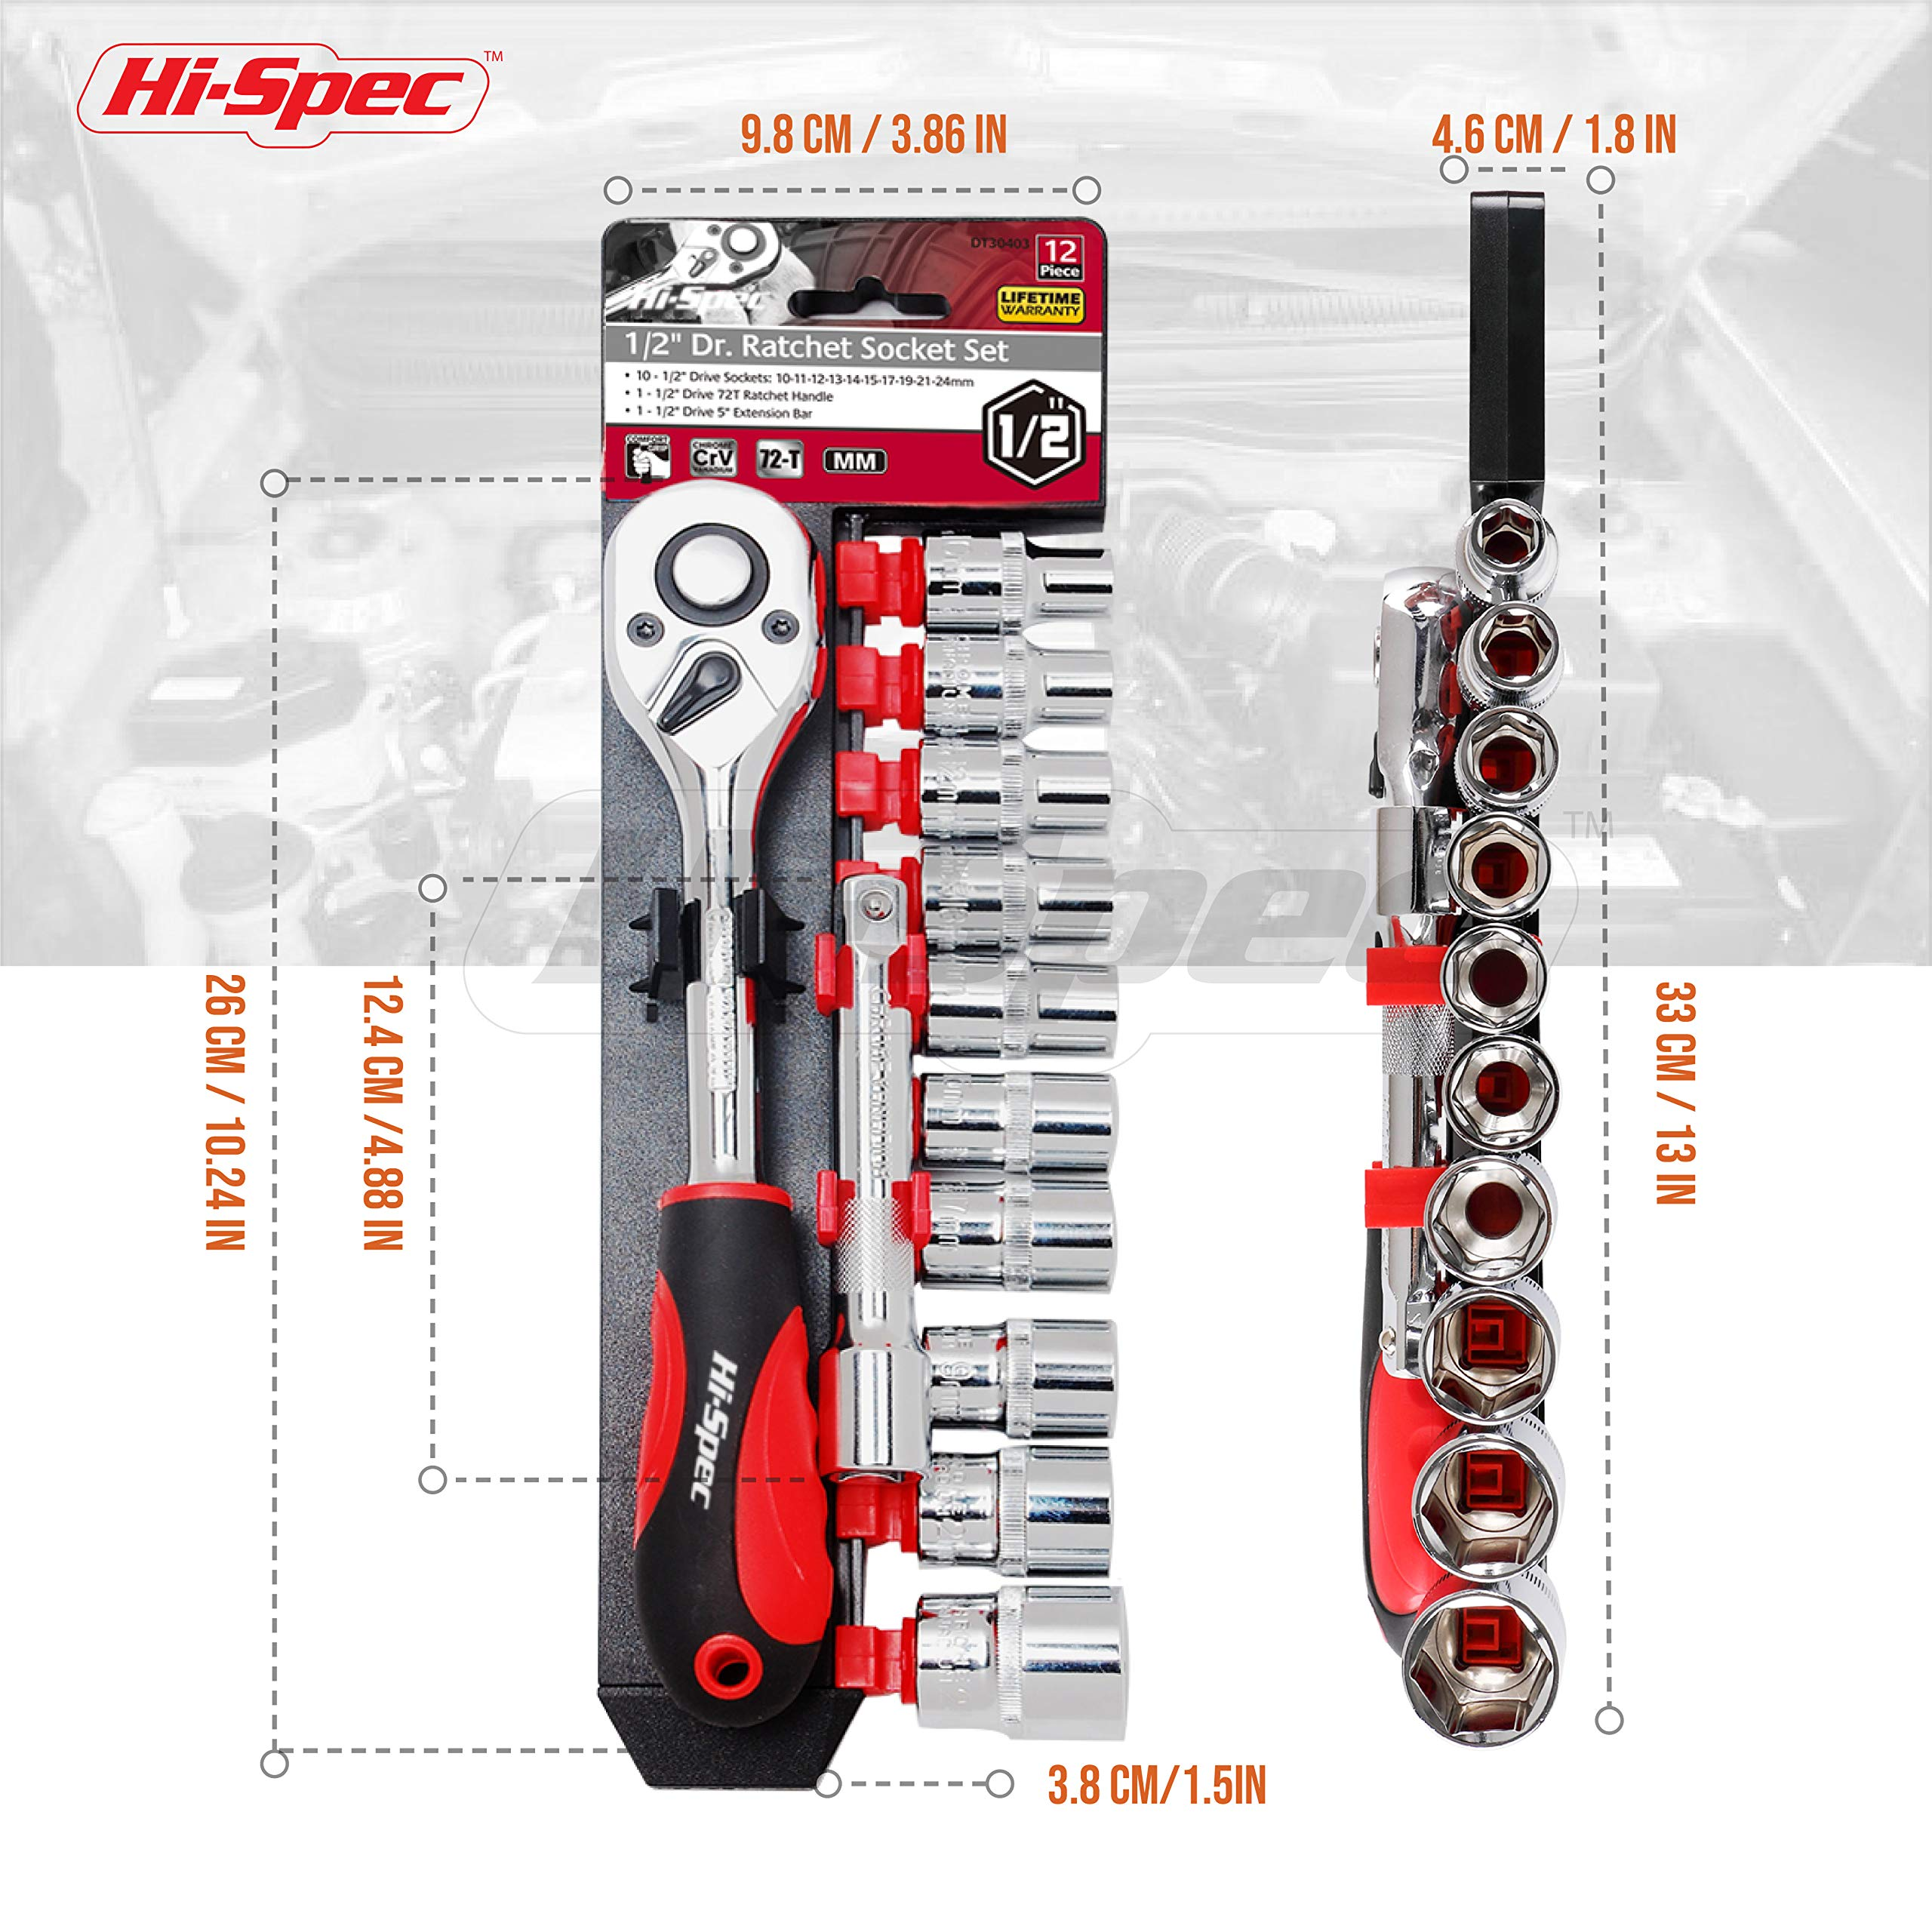 Hi-Spec 12pc 1/2'' Metric Socket Set with 72 Teeth Ratchet Drive Socket Handle with Quick-Release Function, 10-24mm Socket Sizes & 125mm Extension Bar with Convenient Storage Rack Multi-Socket Set by Hi-Spec (Image #4)